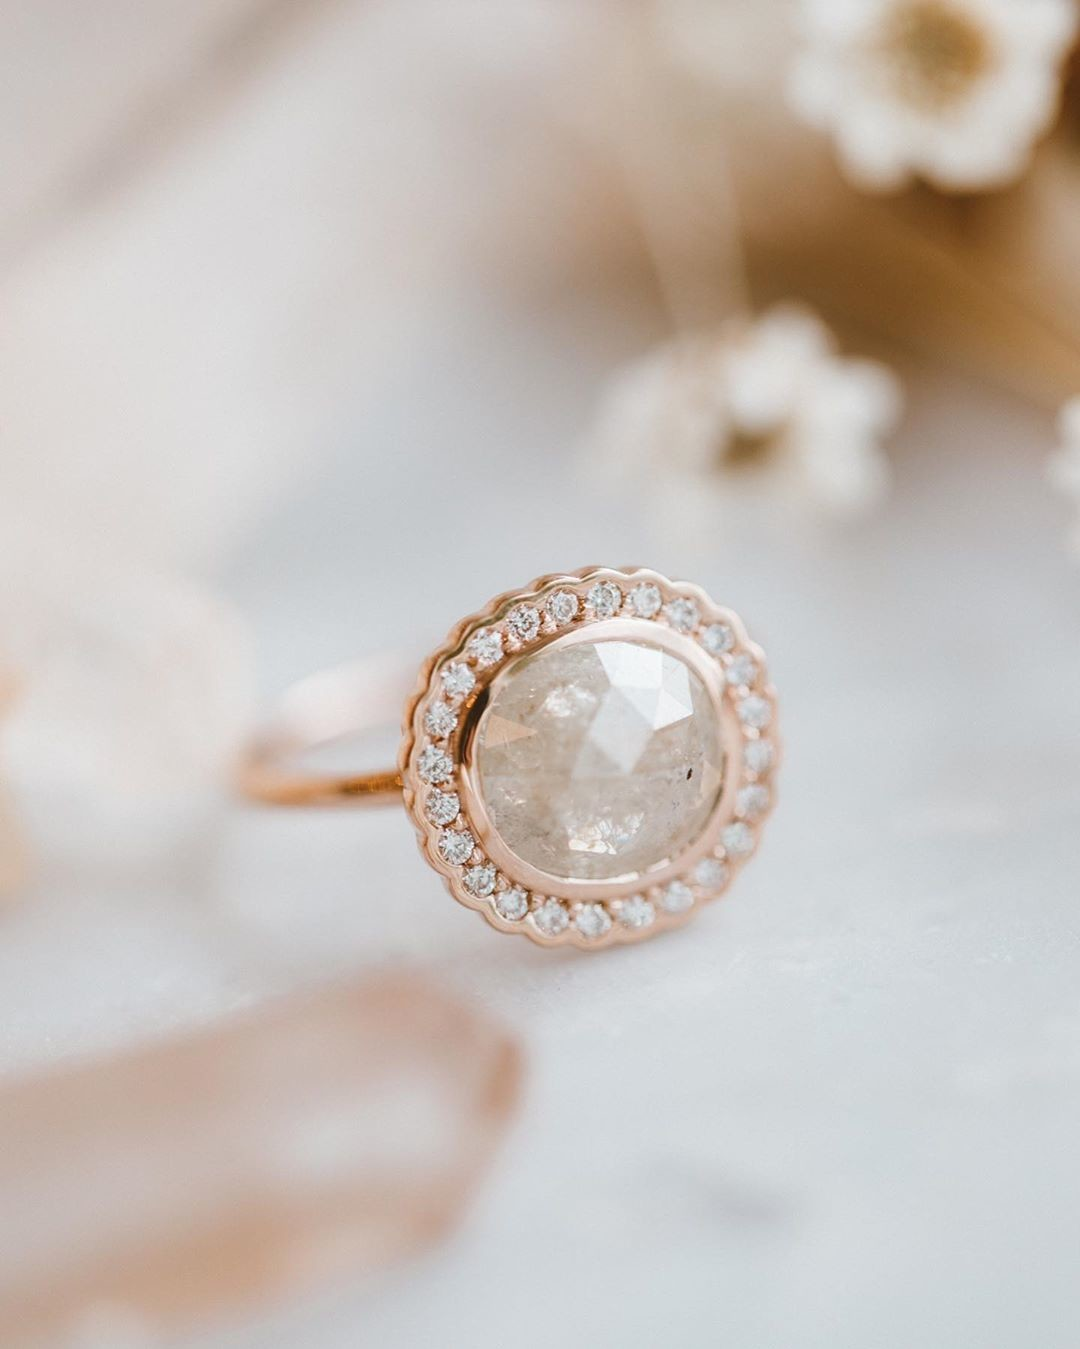 Casual meets couture at #sarahojewelry.